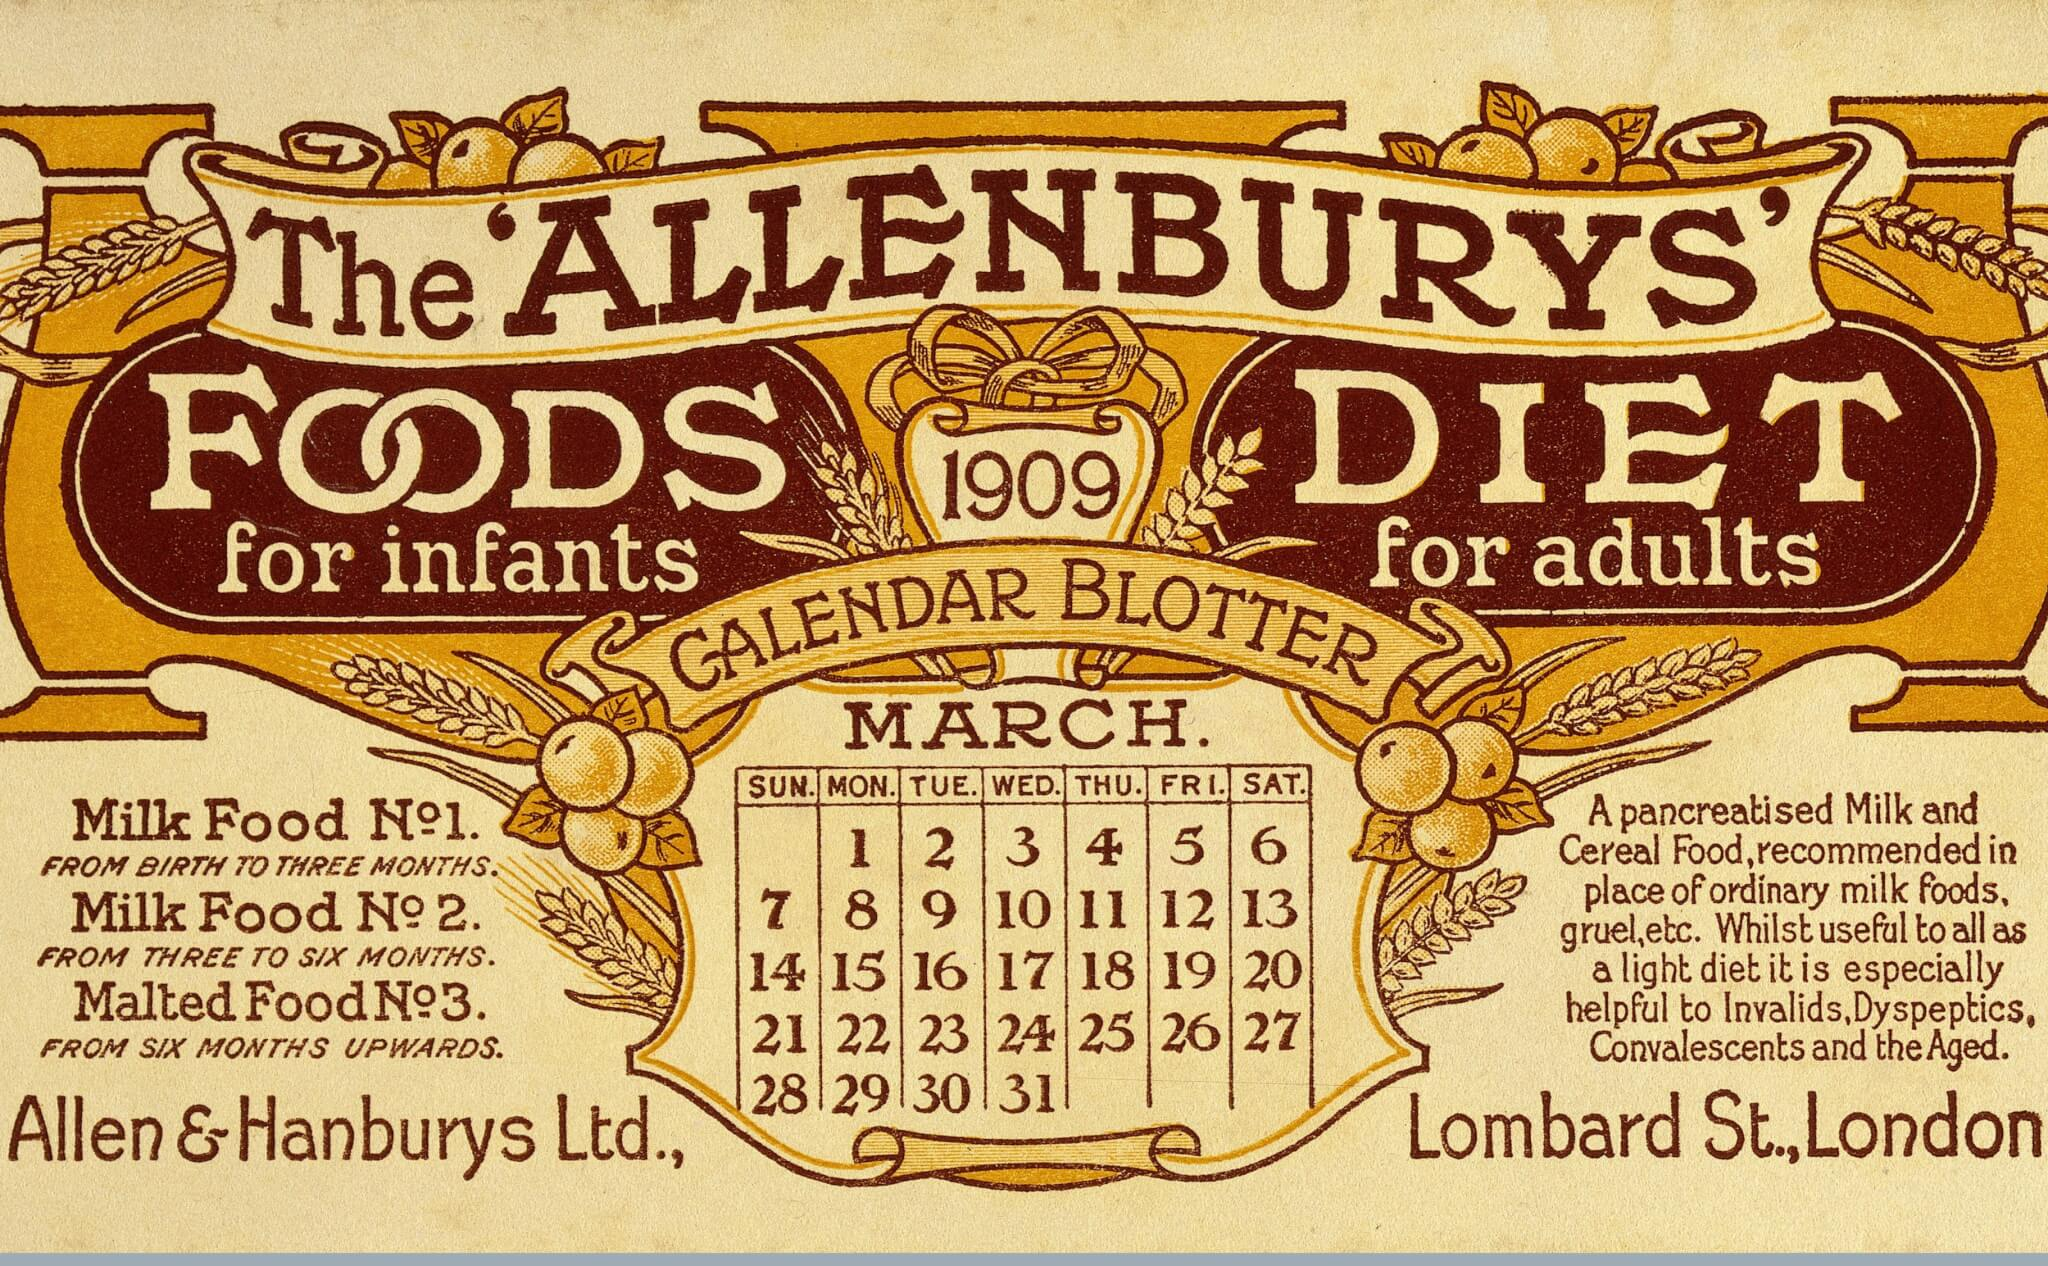 Dietary Innovation and Disease in the 19th and 20th centuries